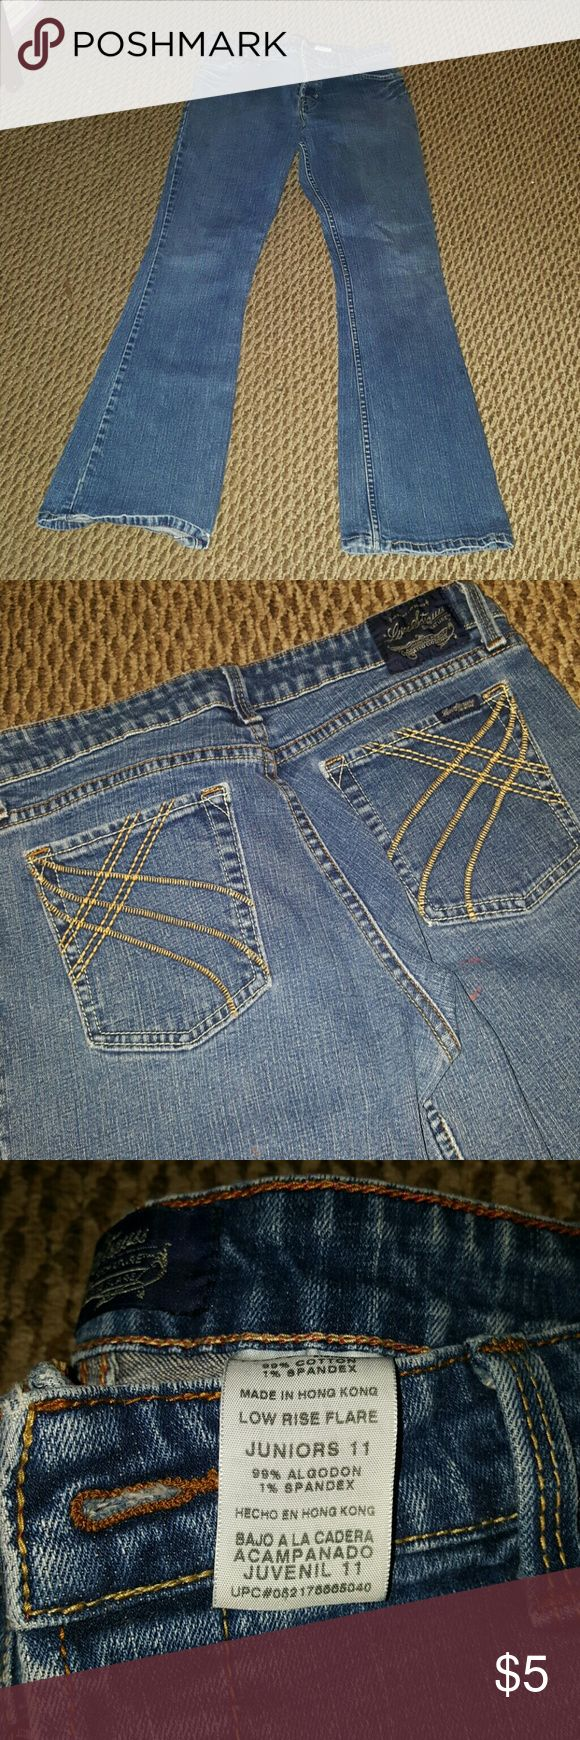 Juniors Low rise jeans Juniors Low rise flare jeans with 3 button as shown in picture, worn a few times, as shown in picture there is nail Polish stain on the back, these are gonna be listed cheap. levi Strauss  Jeans Flare & Wide Leg